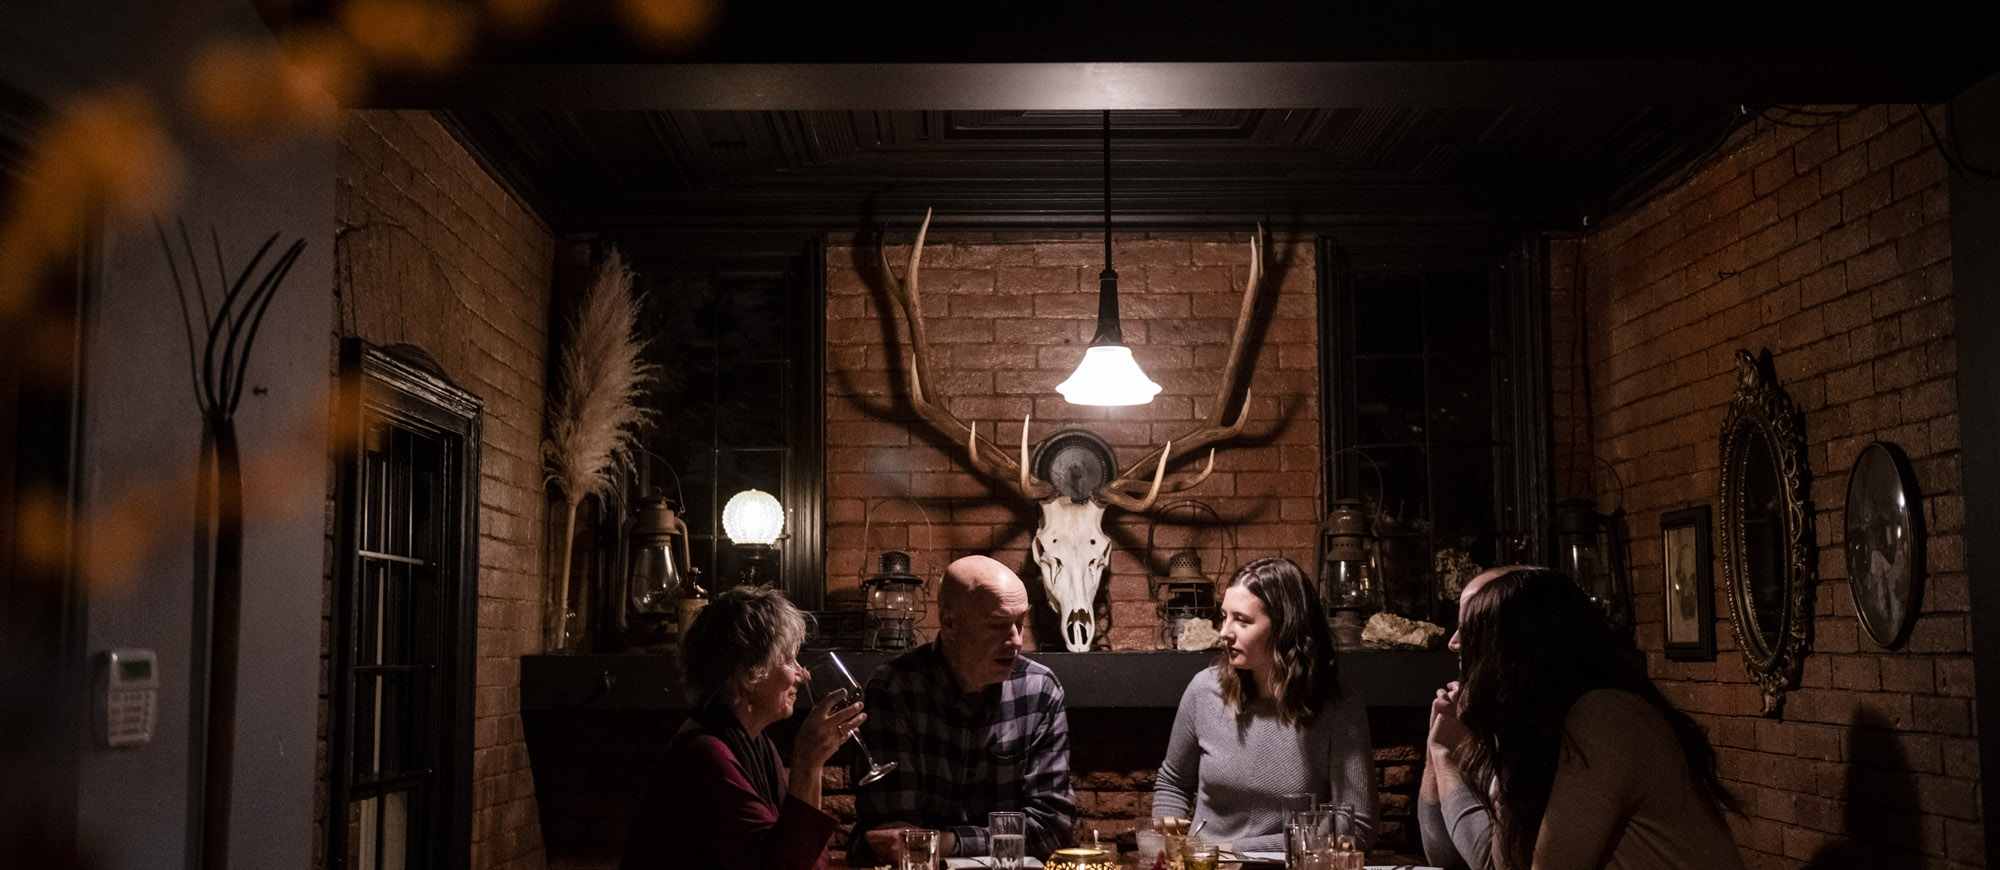 Four people sit around a candle lit table at Pitchfork Eatery in Nelson, BC